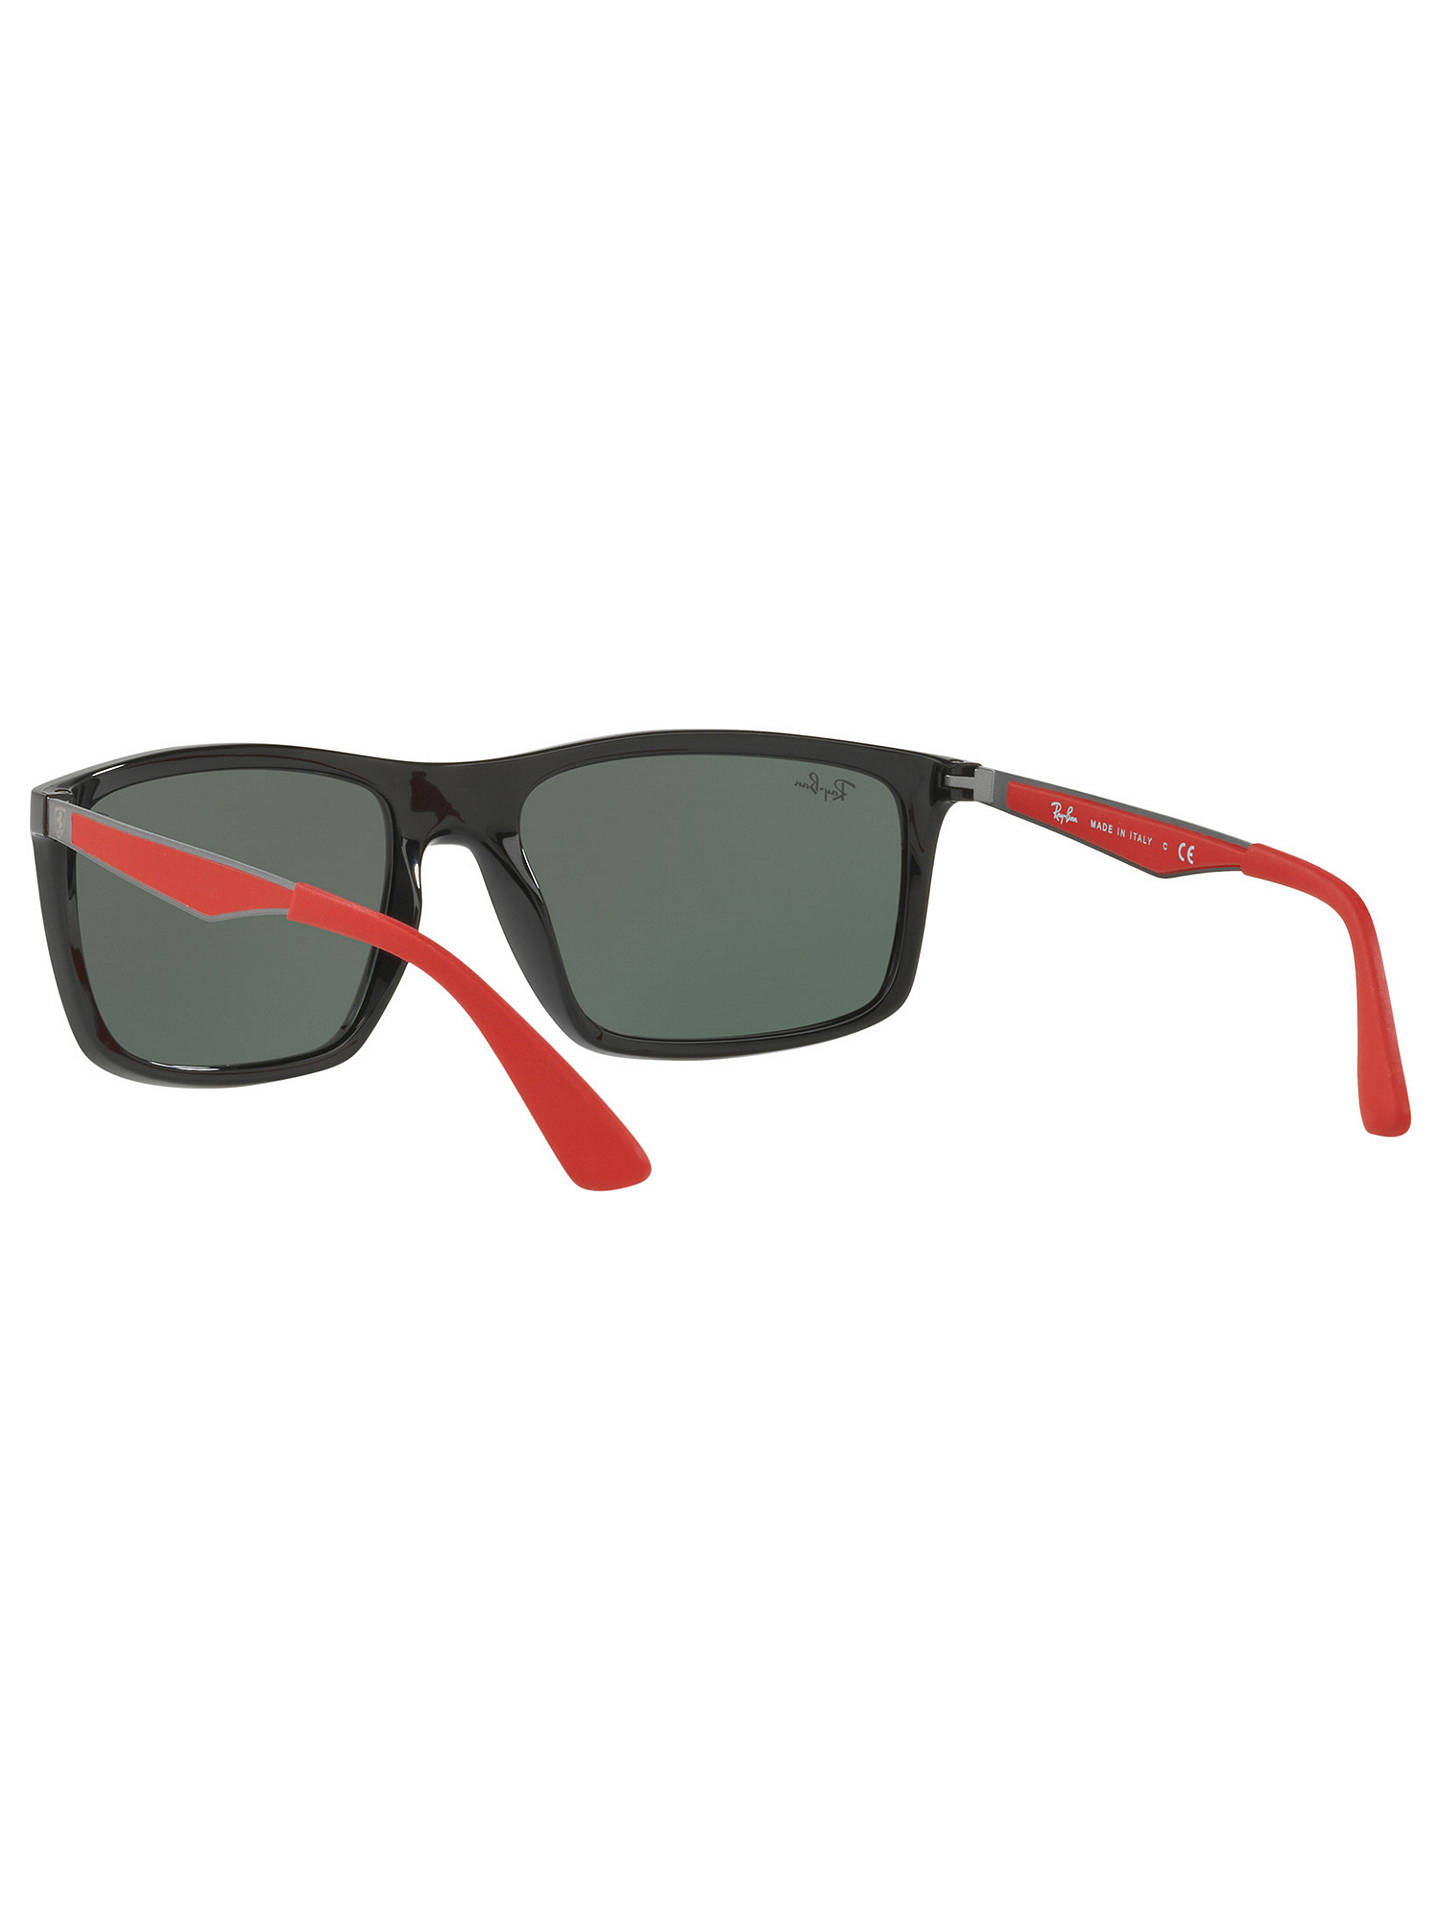 BuyRay-Ban RB4228M Scuderia Ferrari Rectangular Sunglasses, Black/Dark Green Online at johnlewis.com